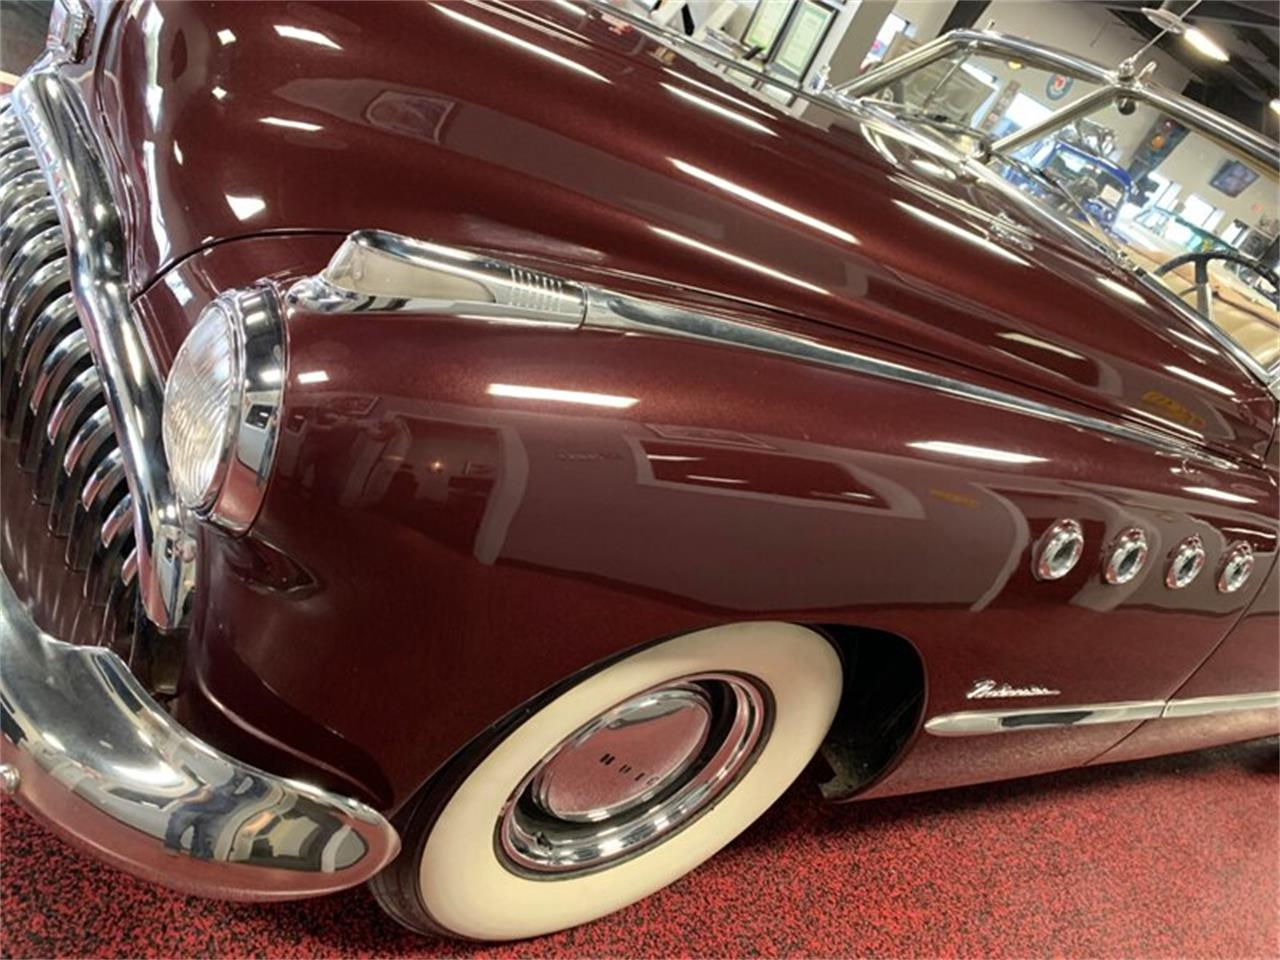 1949 Buick Roadmaster for sale in Bismarck, ND – photo 7